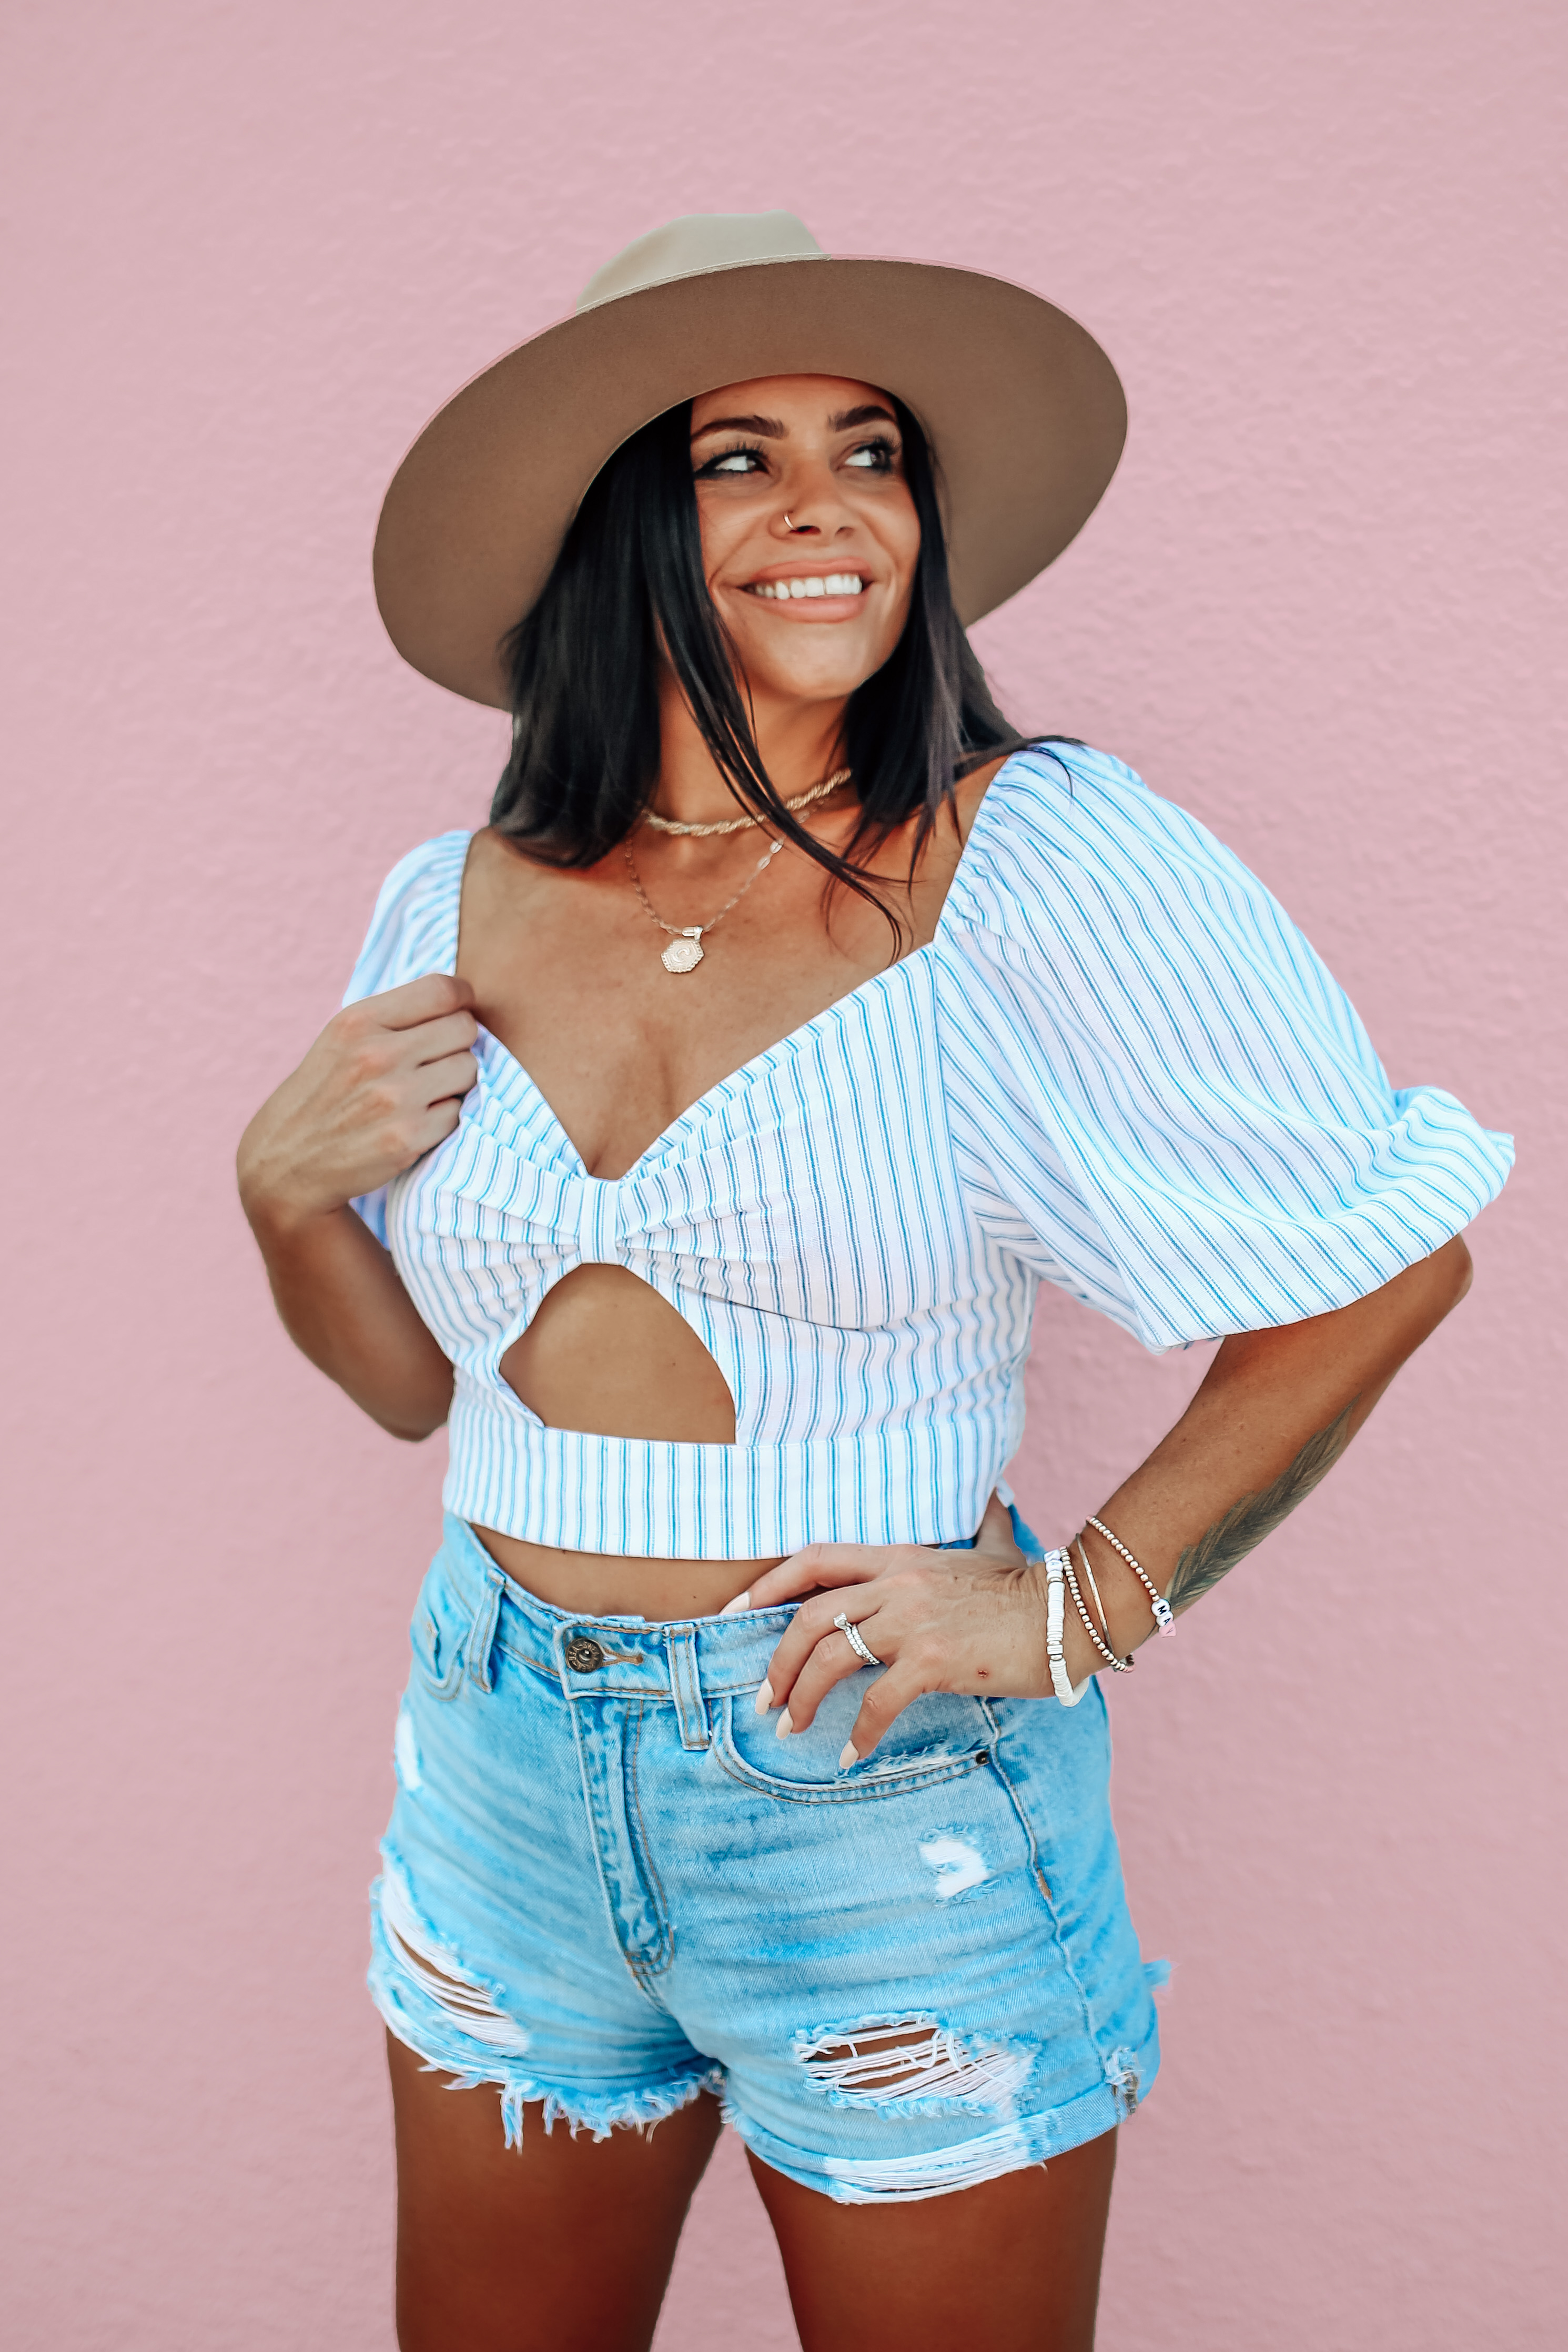 """MAVERICK EXCLUSIVE! WHITE AND BLUE STRIPED CROP TOP. PUFF SLEEVES CAN BE WORN ON OR OFF SHOULDERS. KEYHOLD FRONT DETAIL. STRETCHY ELASTIC RUCHED BACK. 100% COTTON. AMANDA IS 5'7"""" A SIZE 2, WEARING A SMALL. S 0-4 M  4-8 L 8-10"""